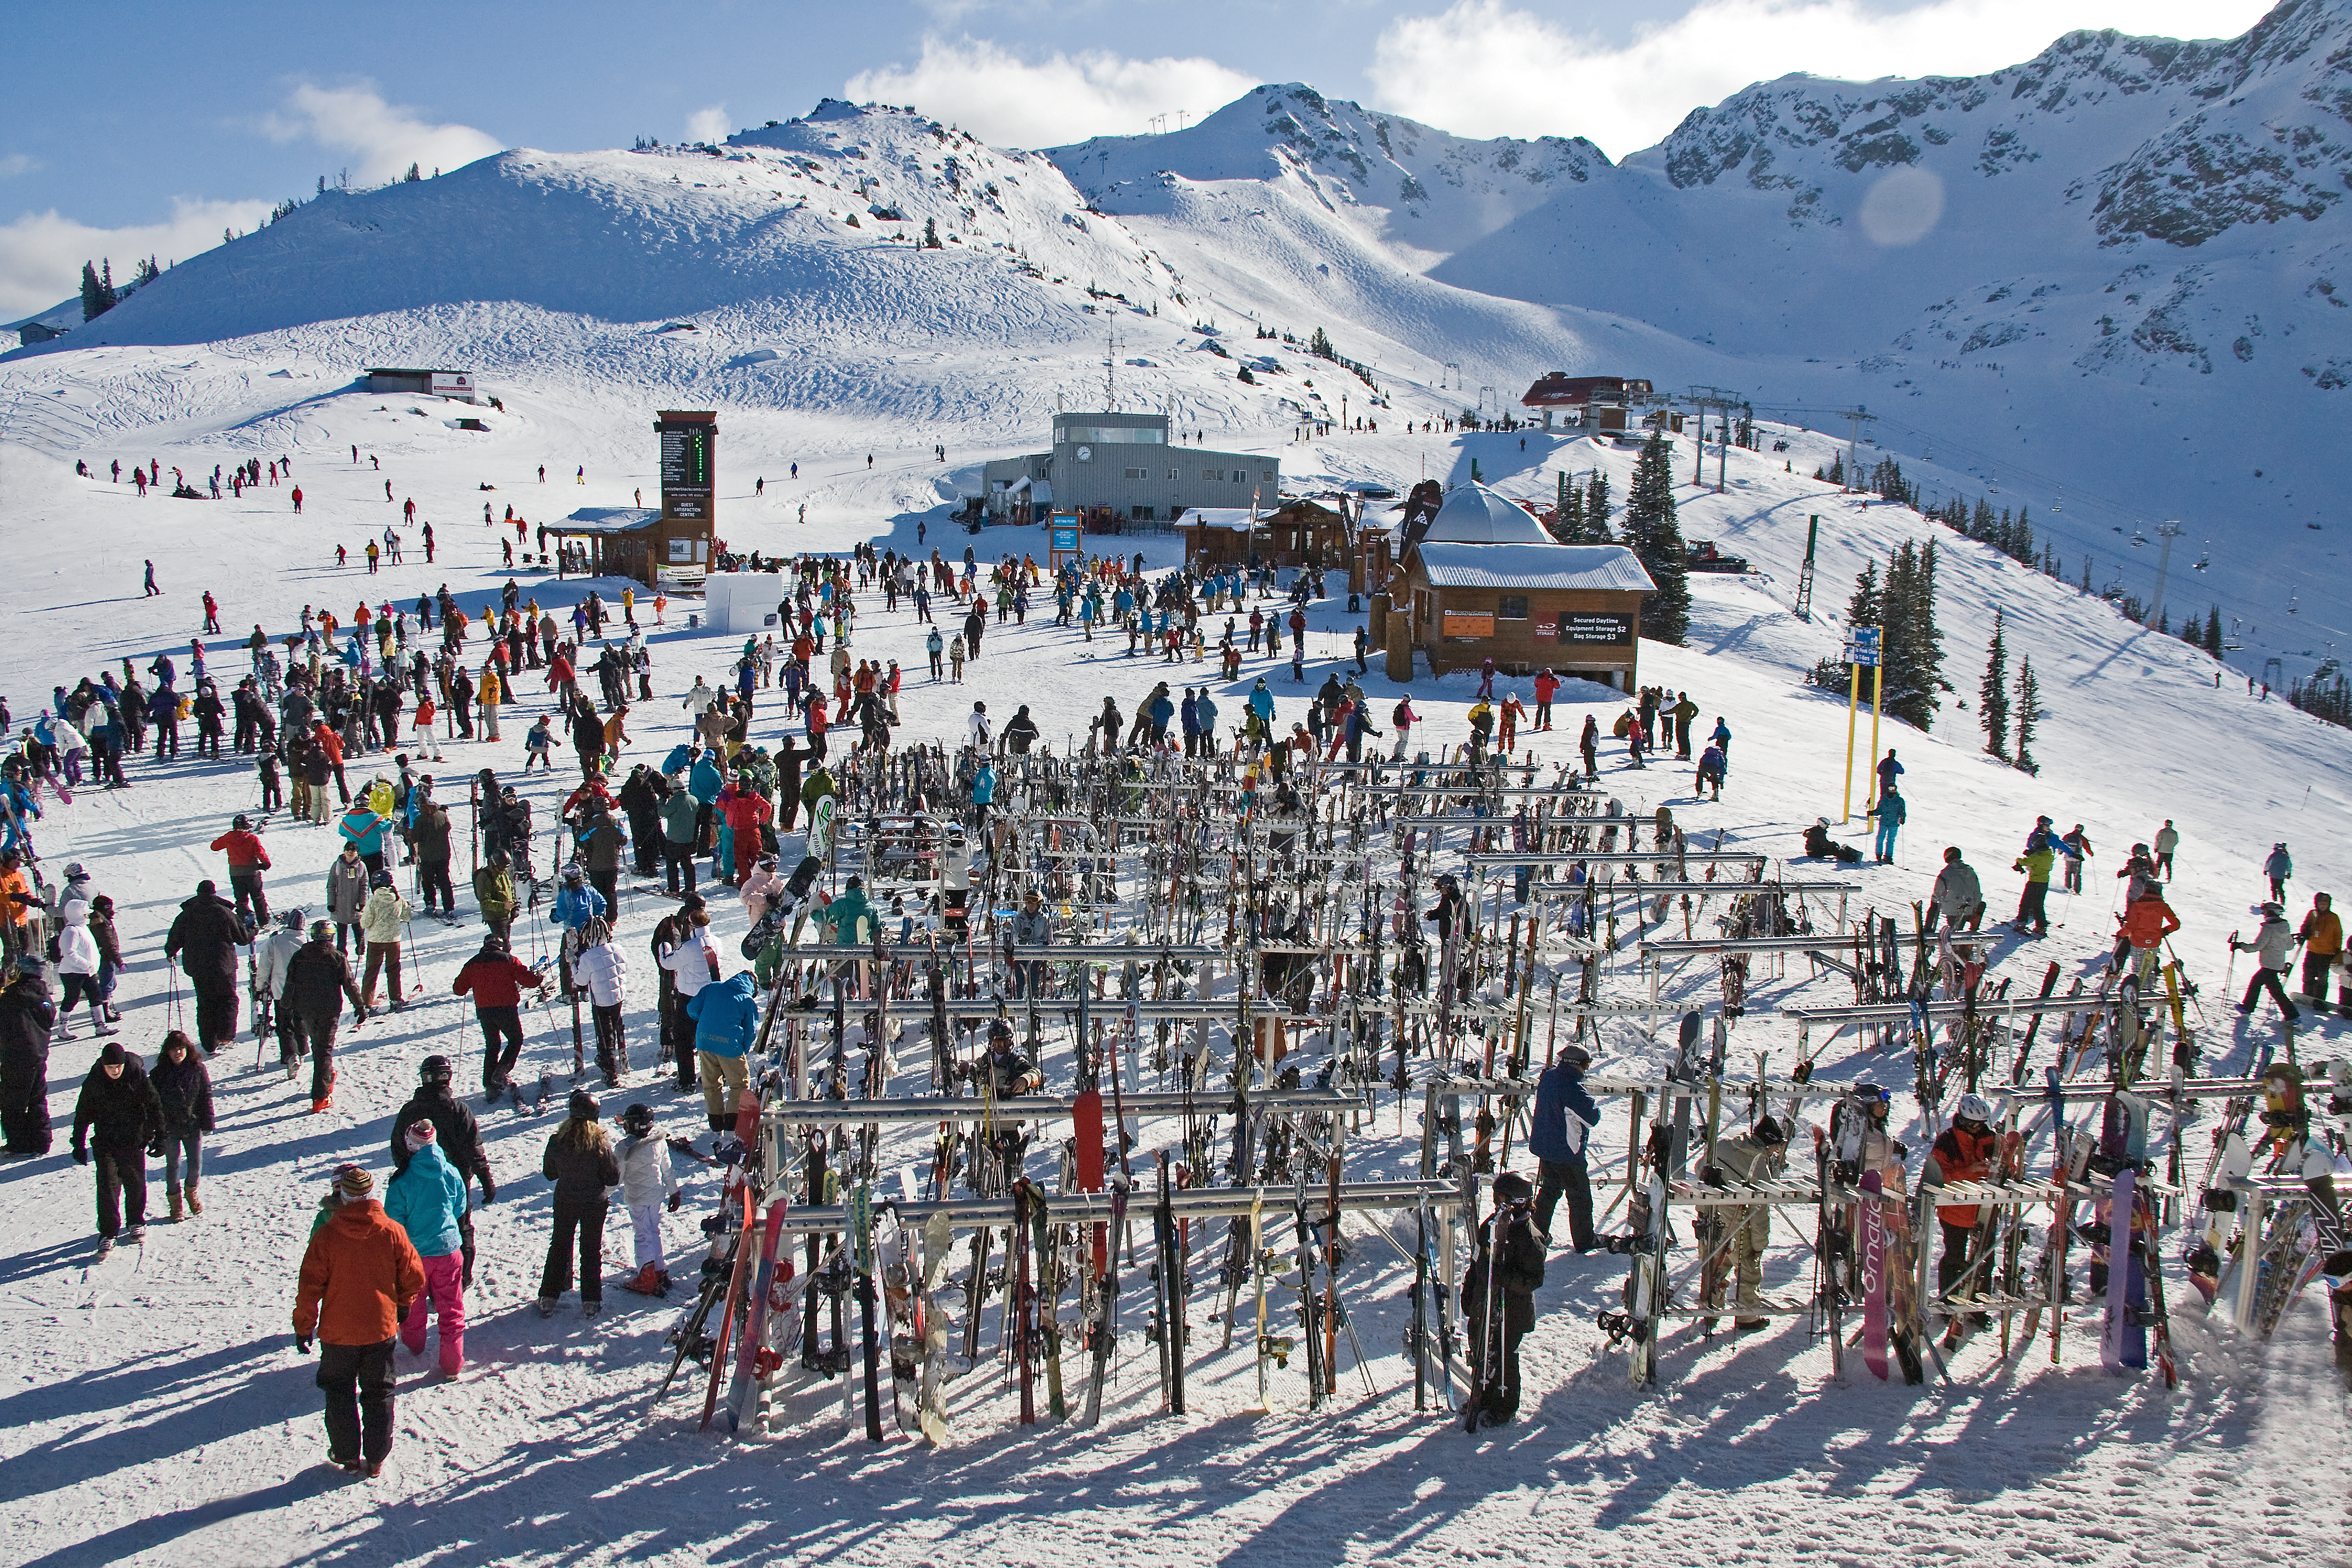 review for whistler blackcomb ski resort from snow central